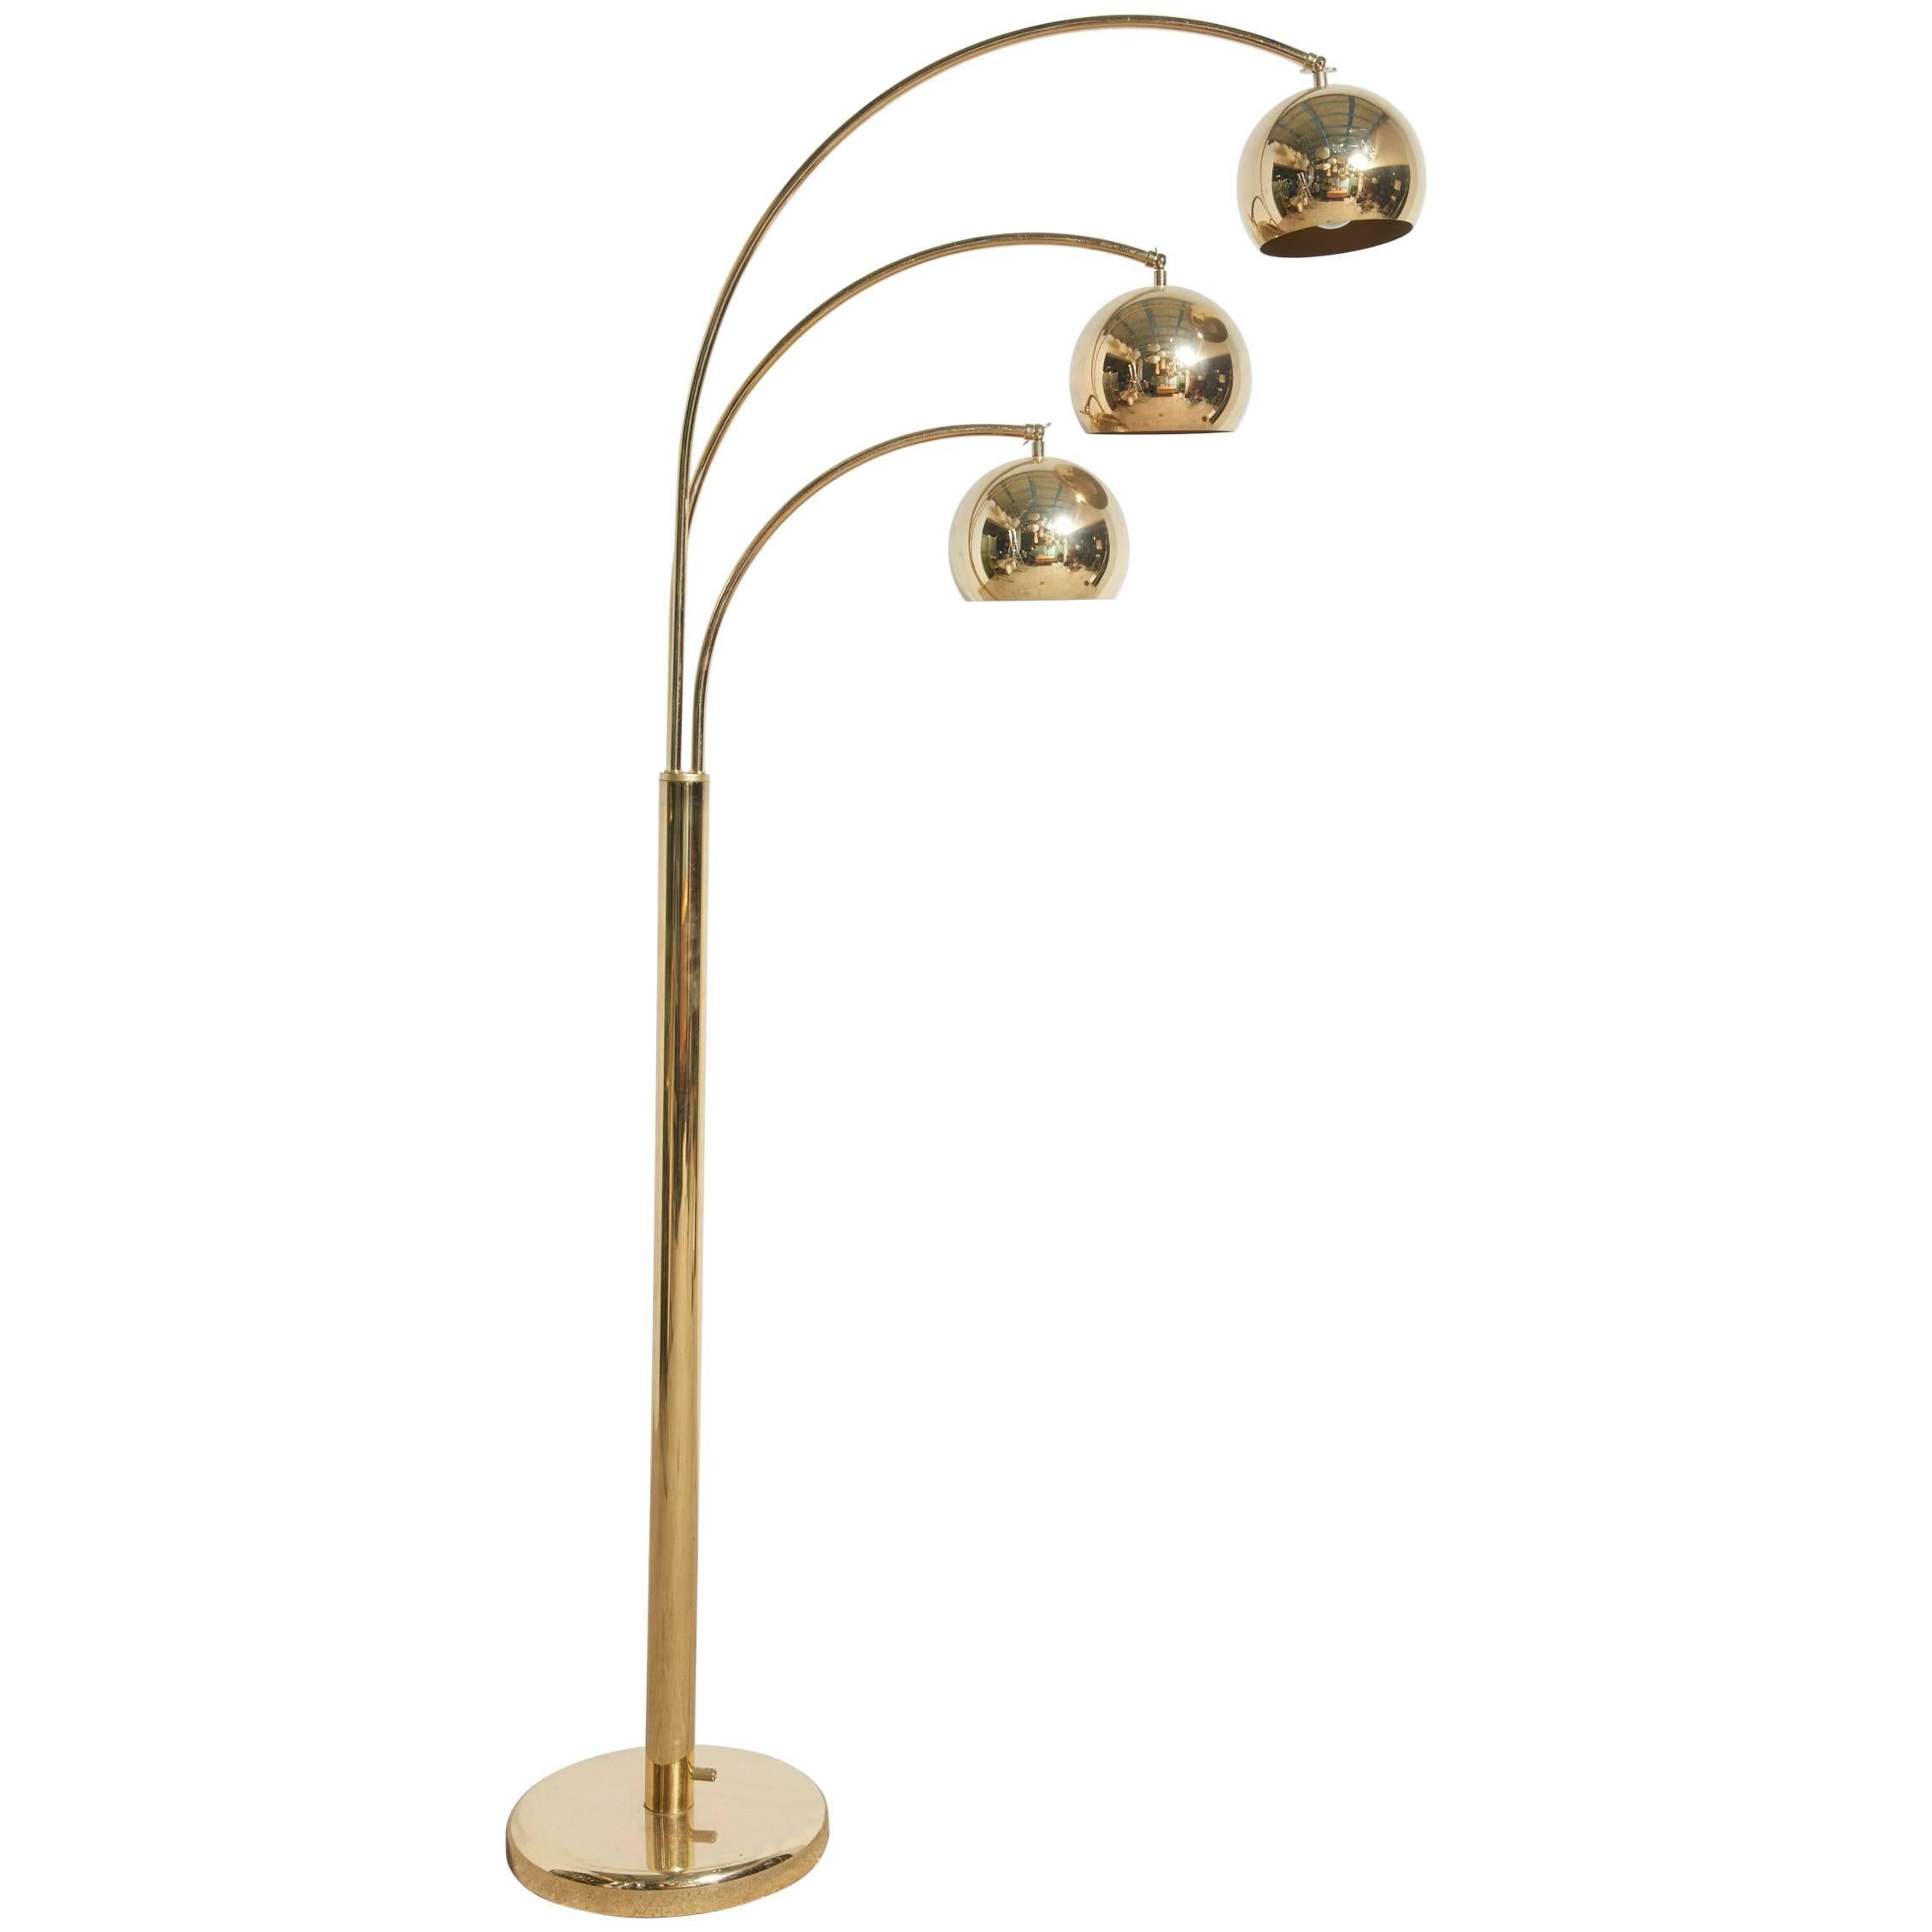 Brass Arc Floor Lamp With Three Adjustable Arms By Goffredo Reggiani, Italy  1